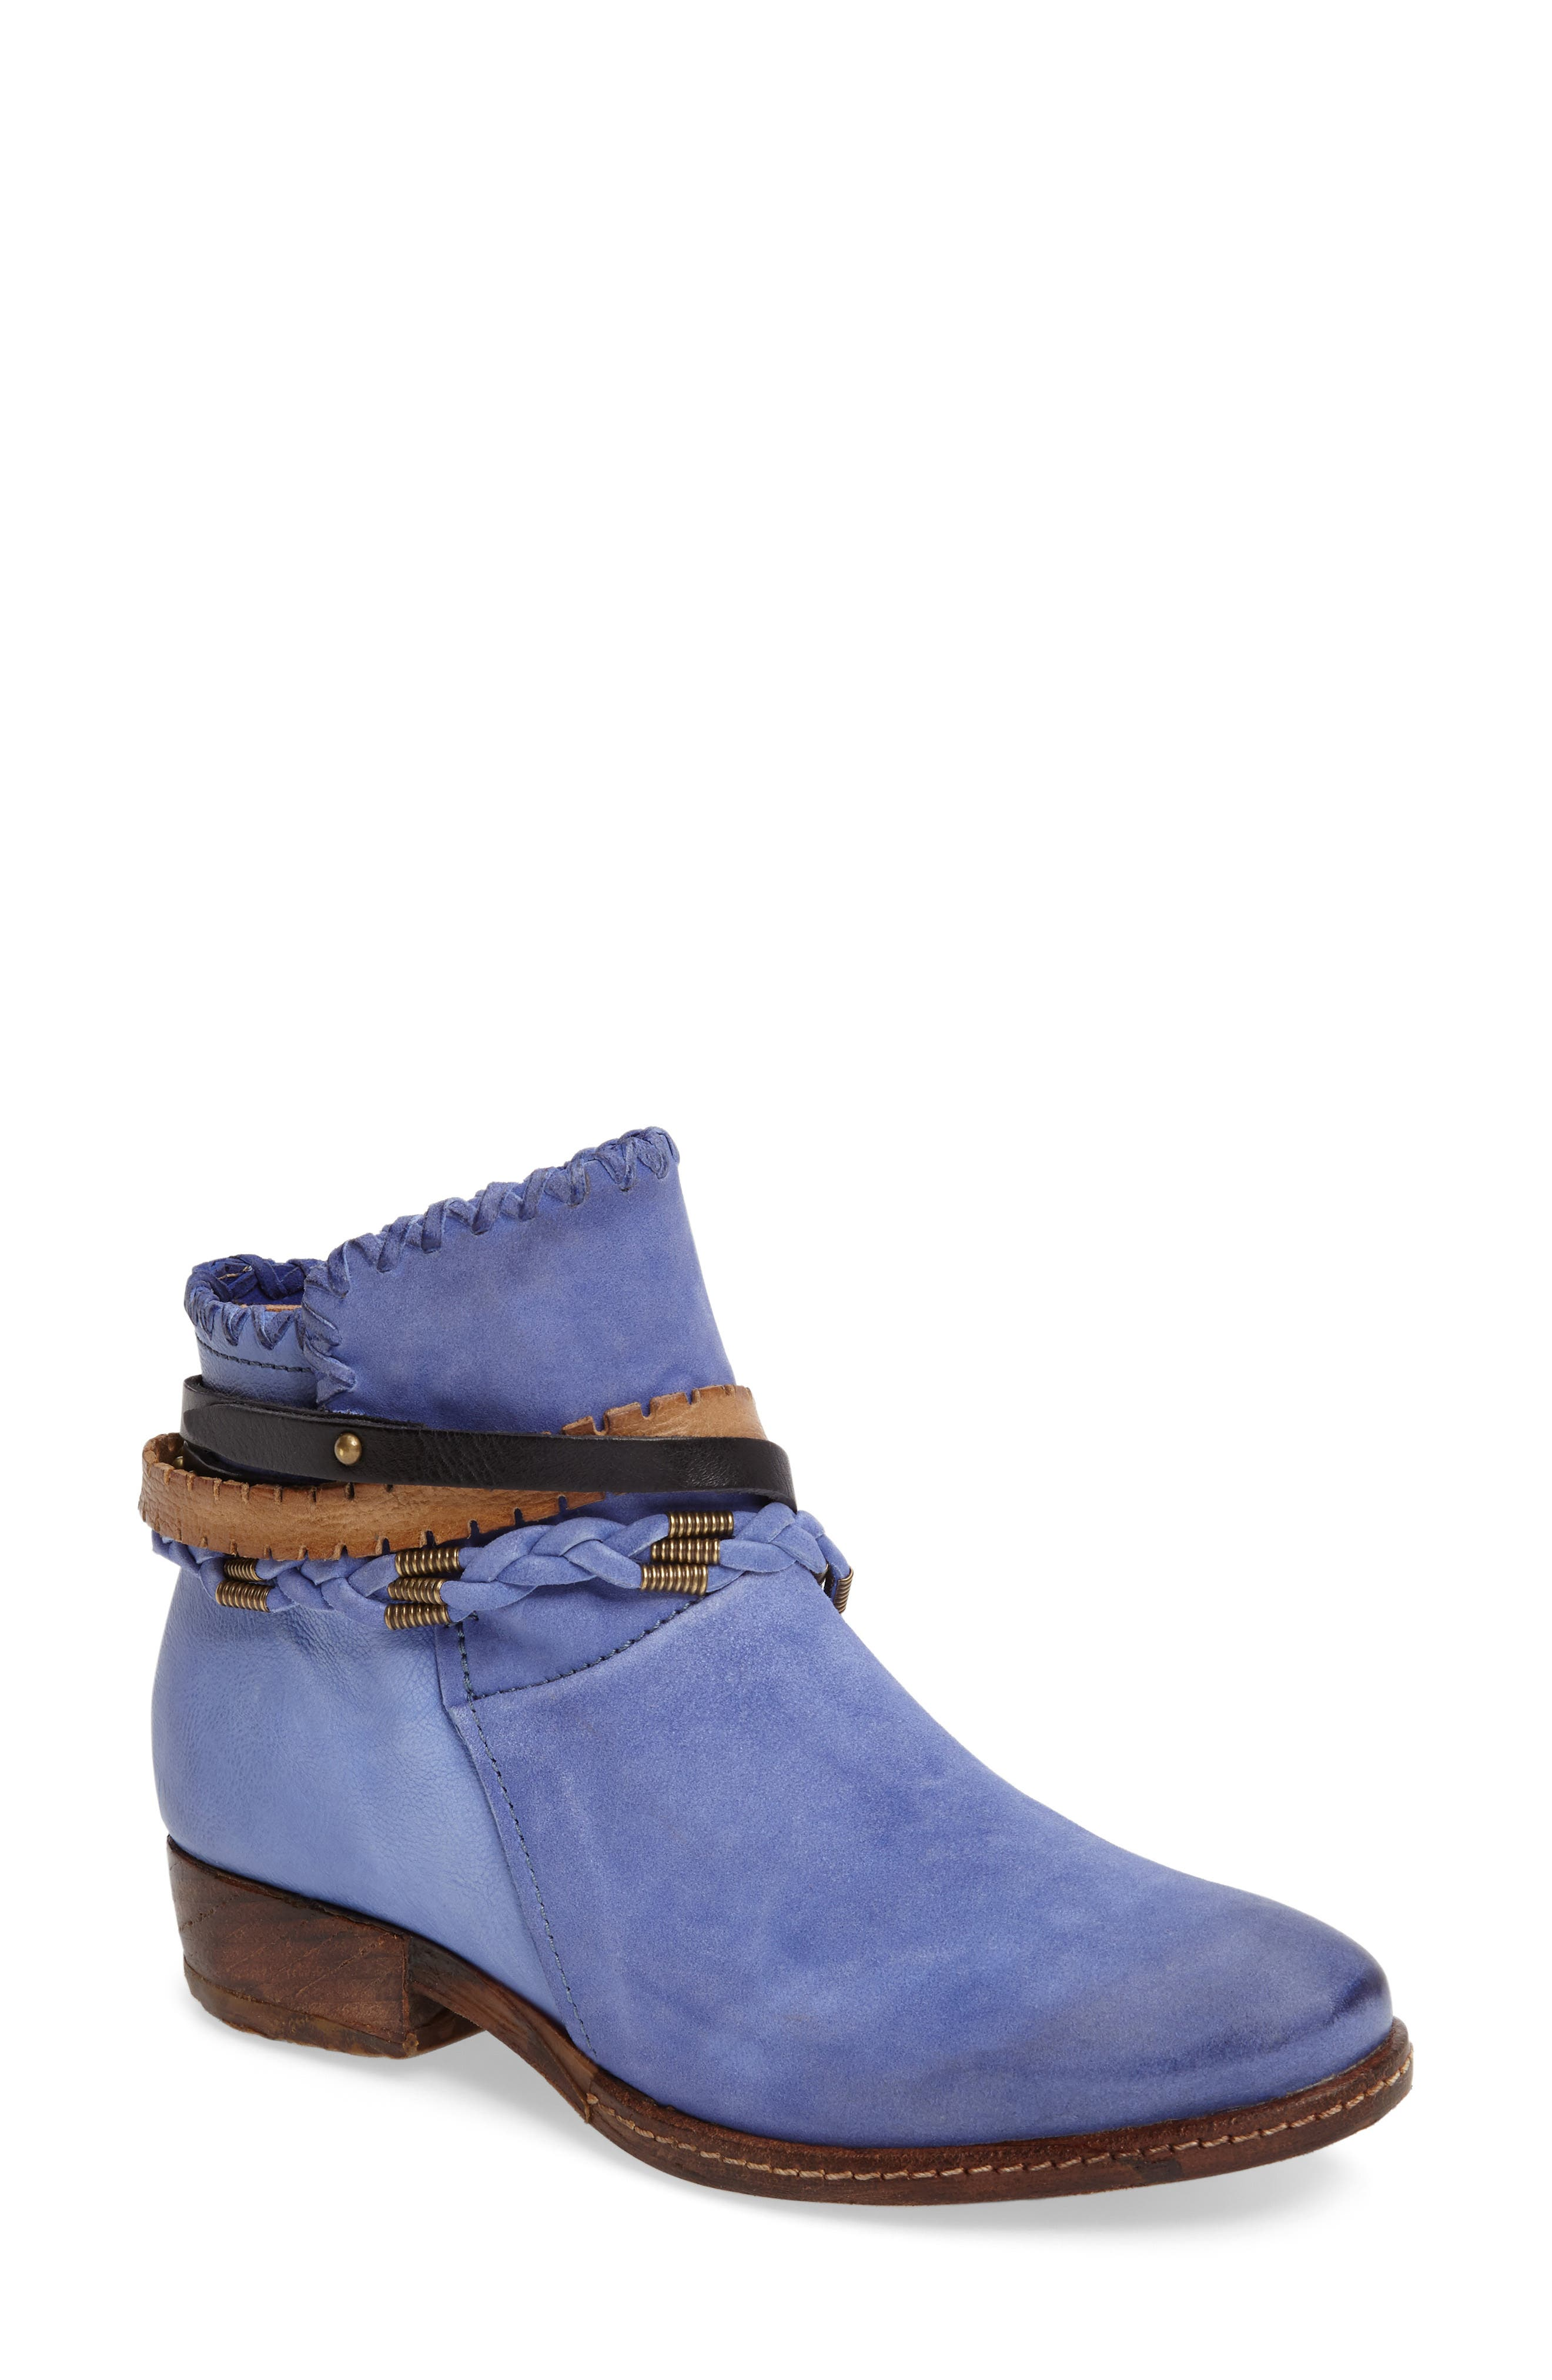 Main Image - A.S. 98 Barney Bootie (Women)